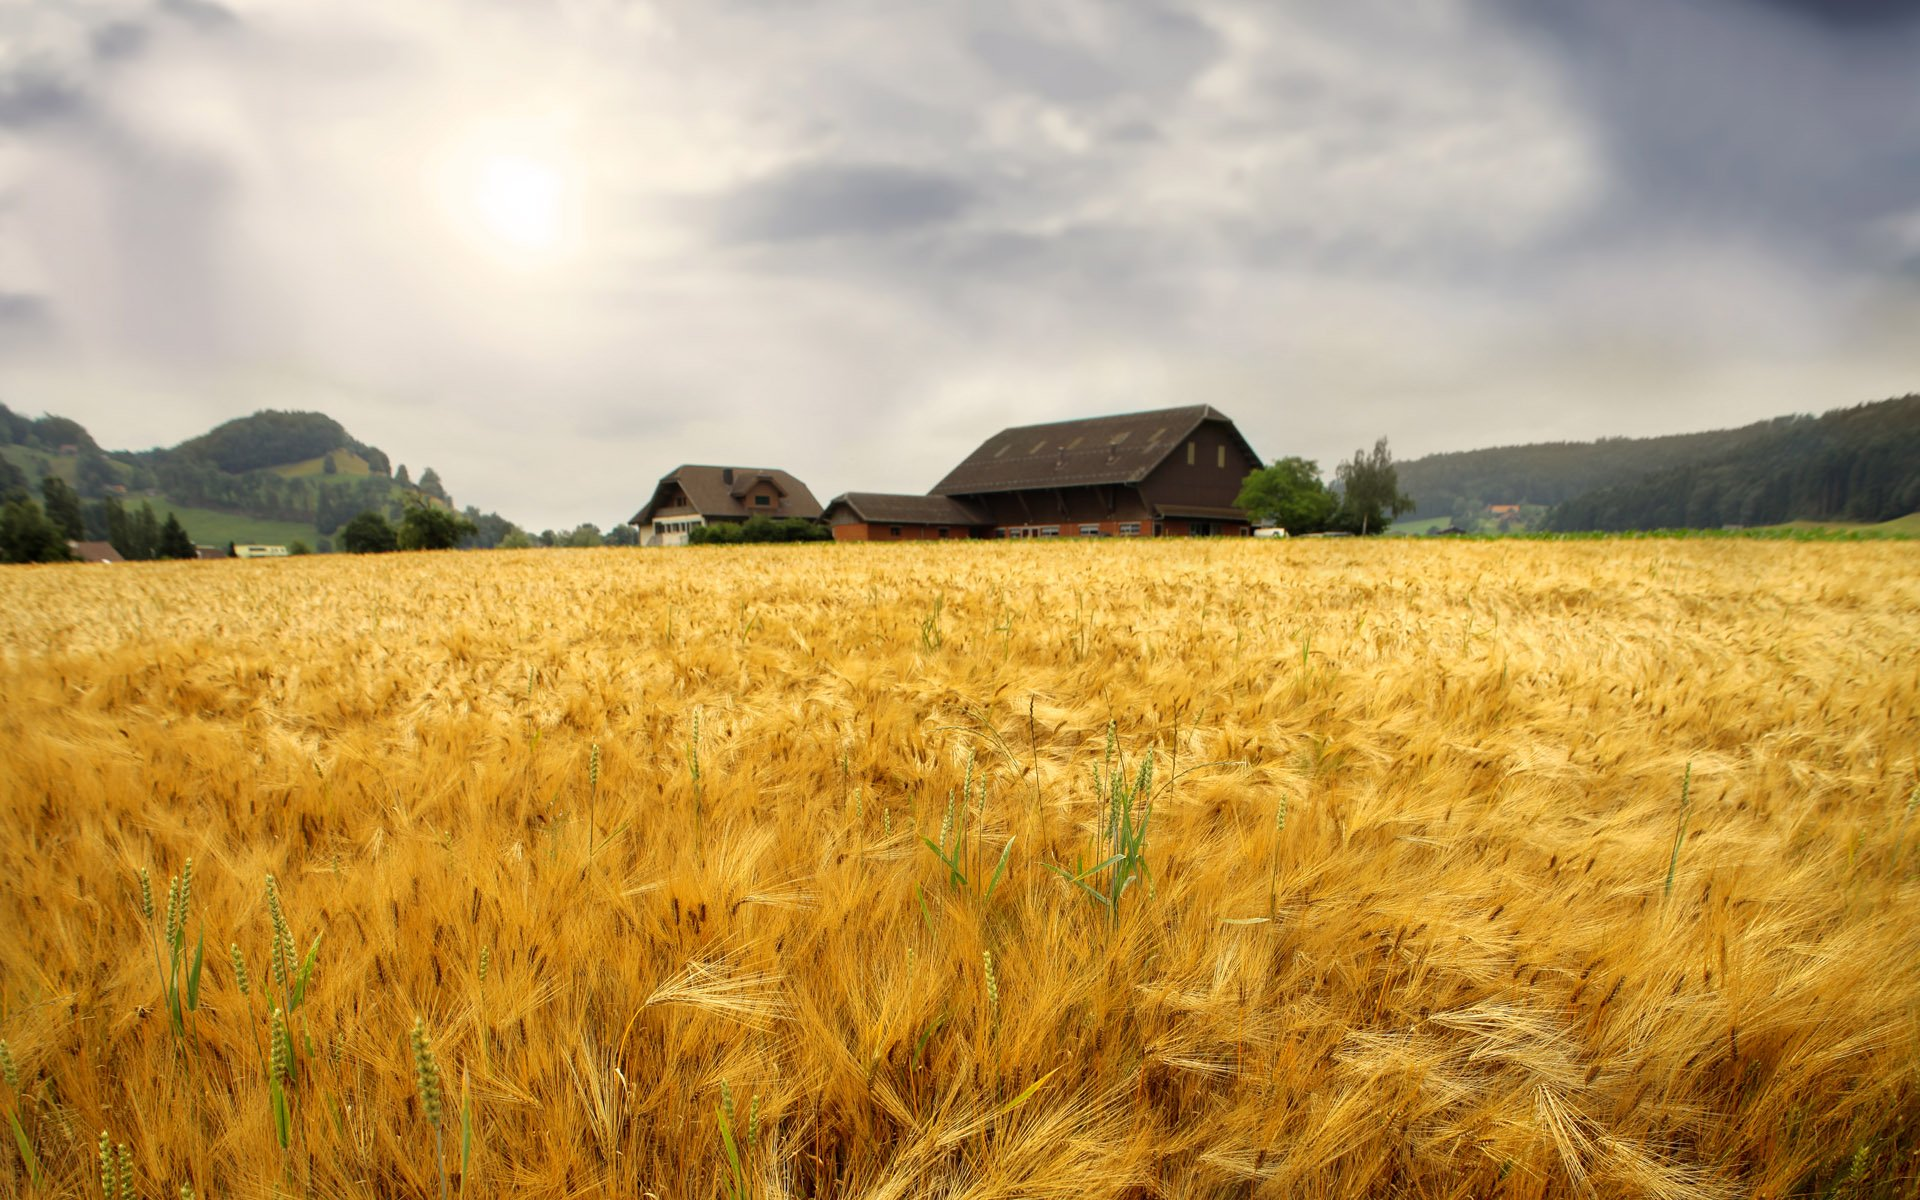 1200 Wallpapers Wheat Fields 1920X1200 Wallpaper 7 I write a lot 1920x1200